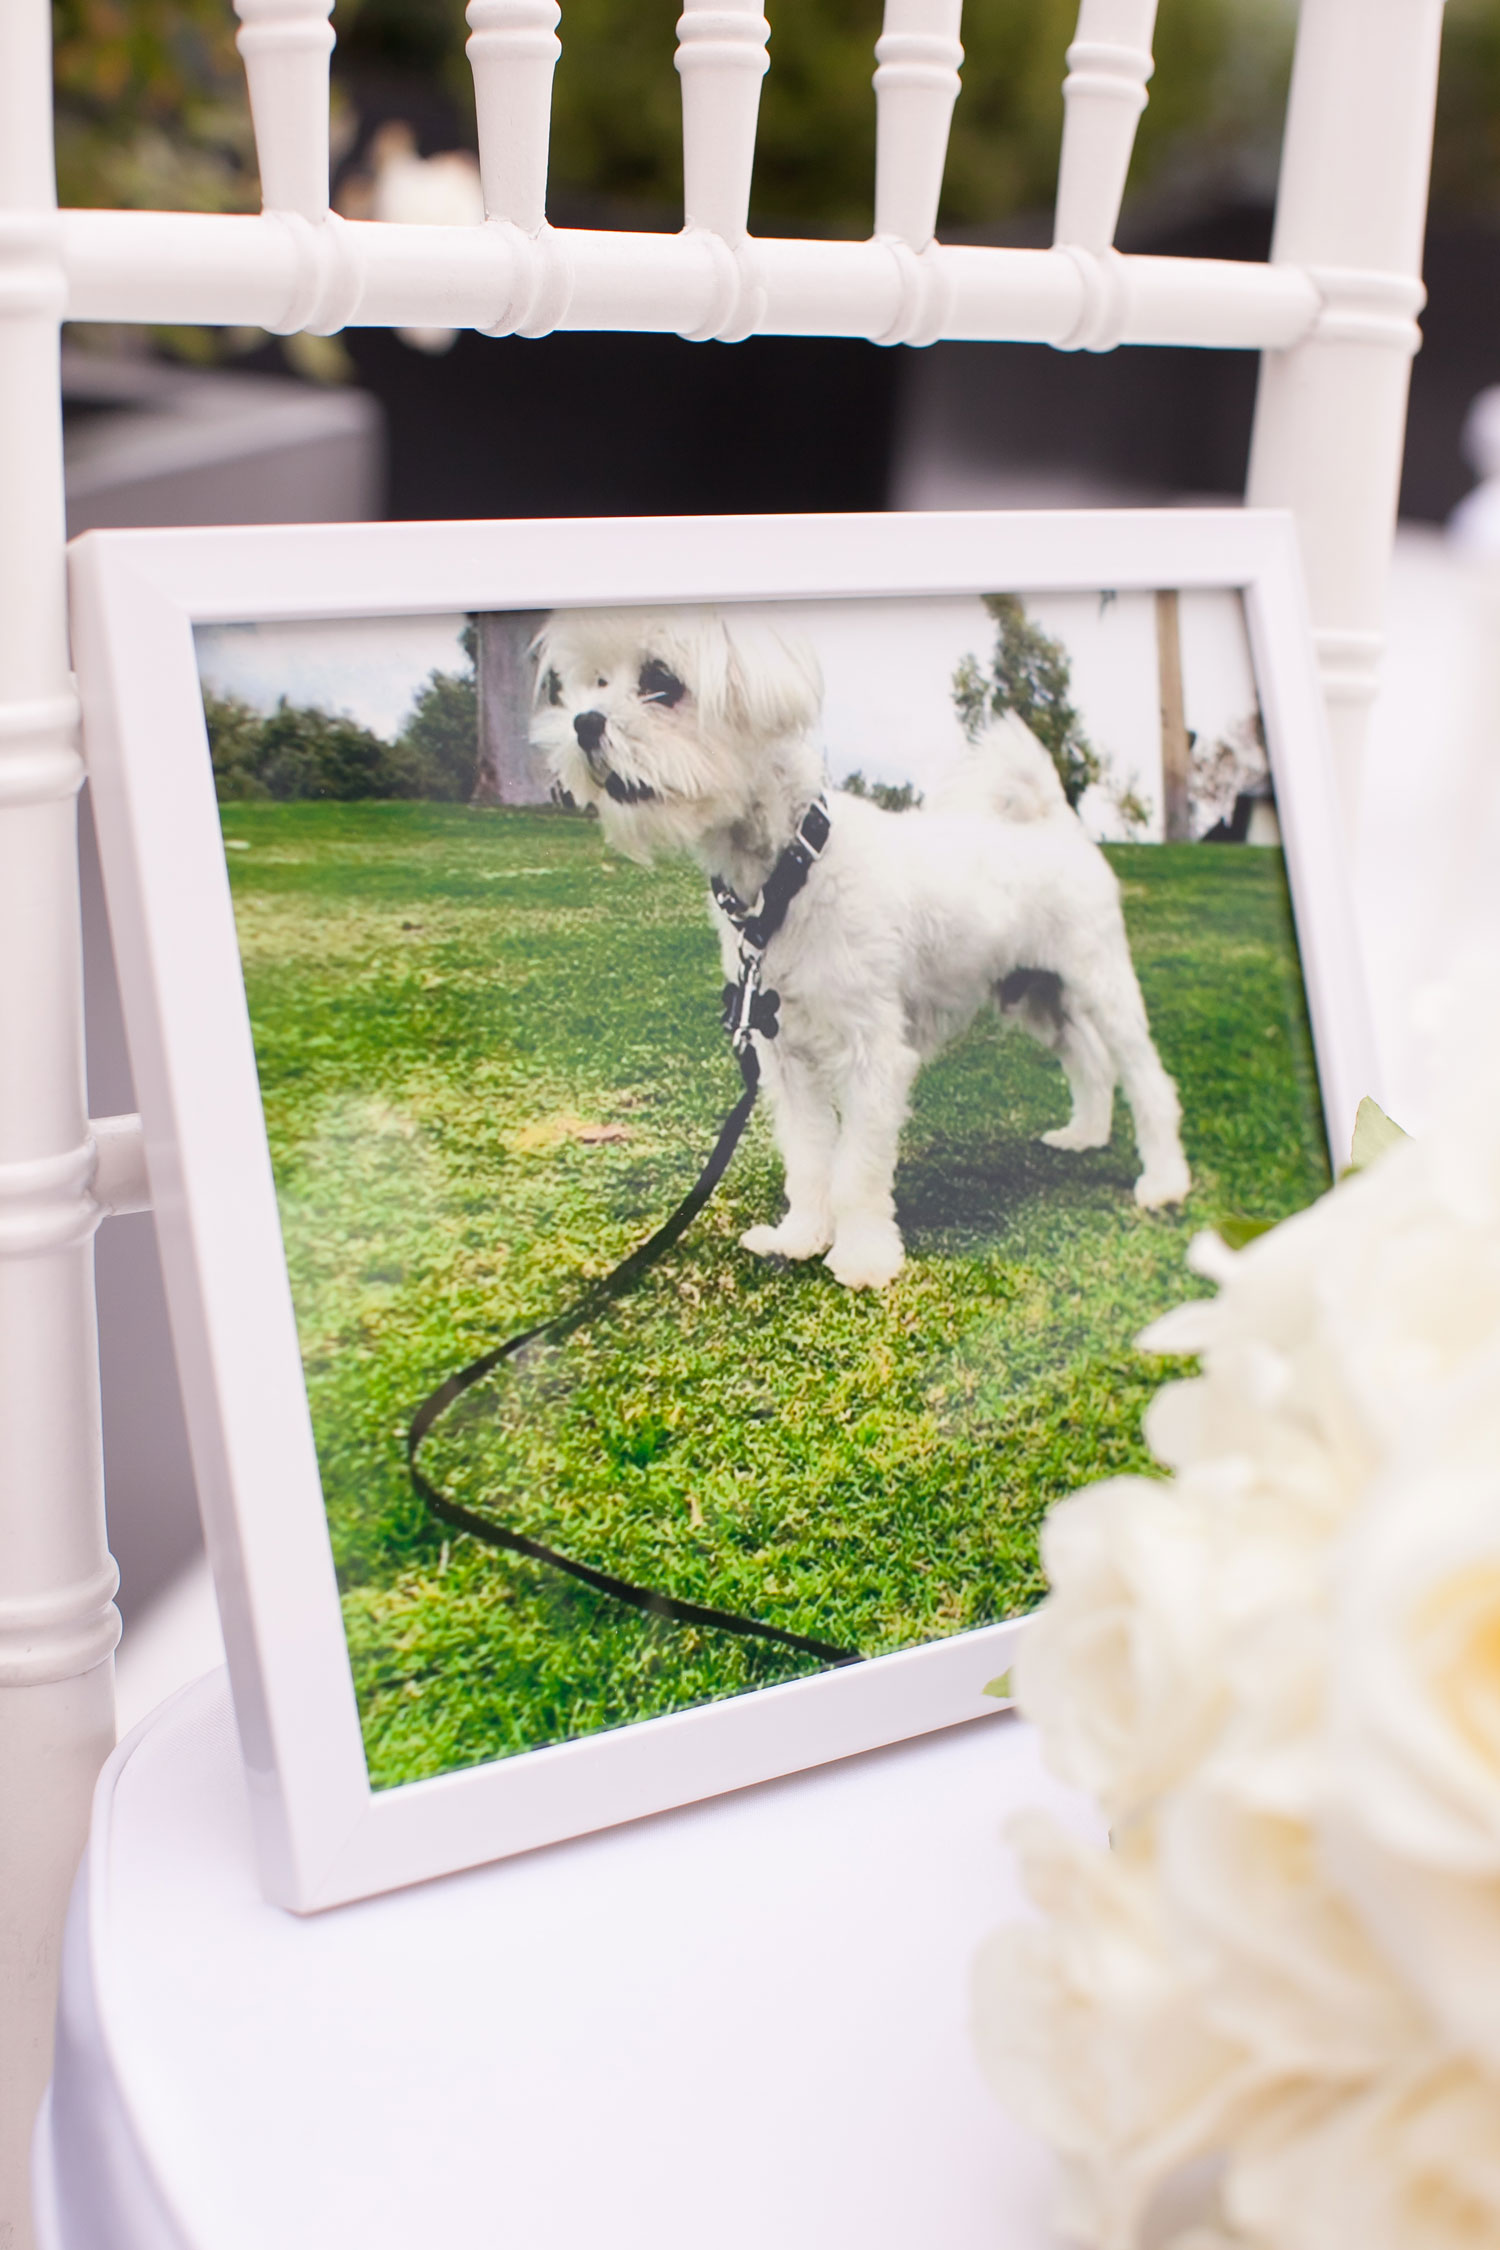 Photo of dog in frame on white ceremony chair at outdoor wedding